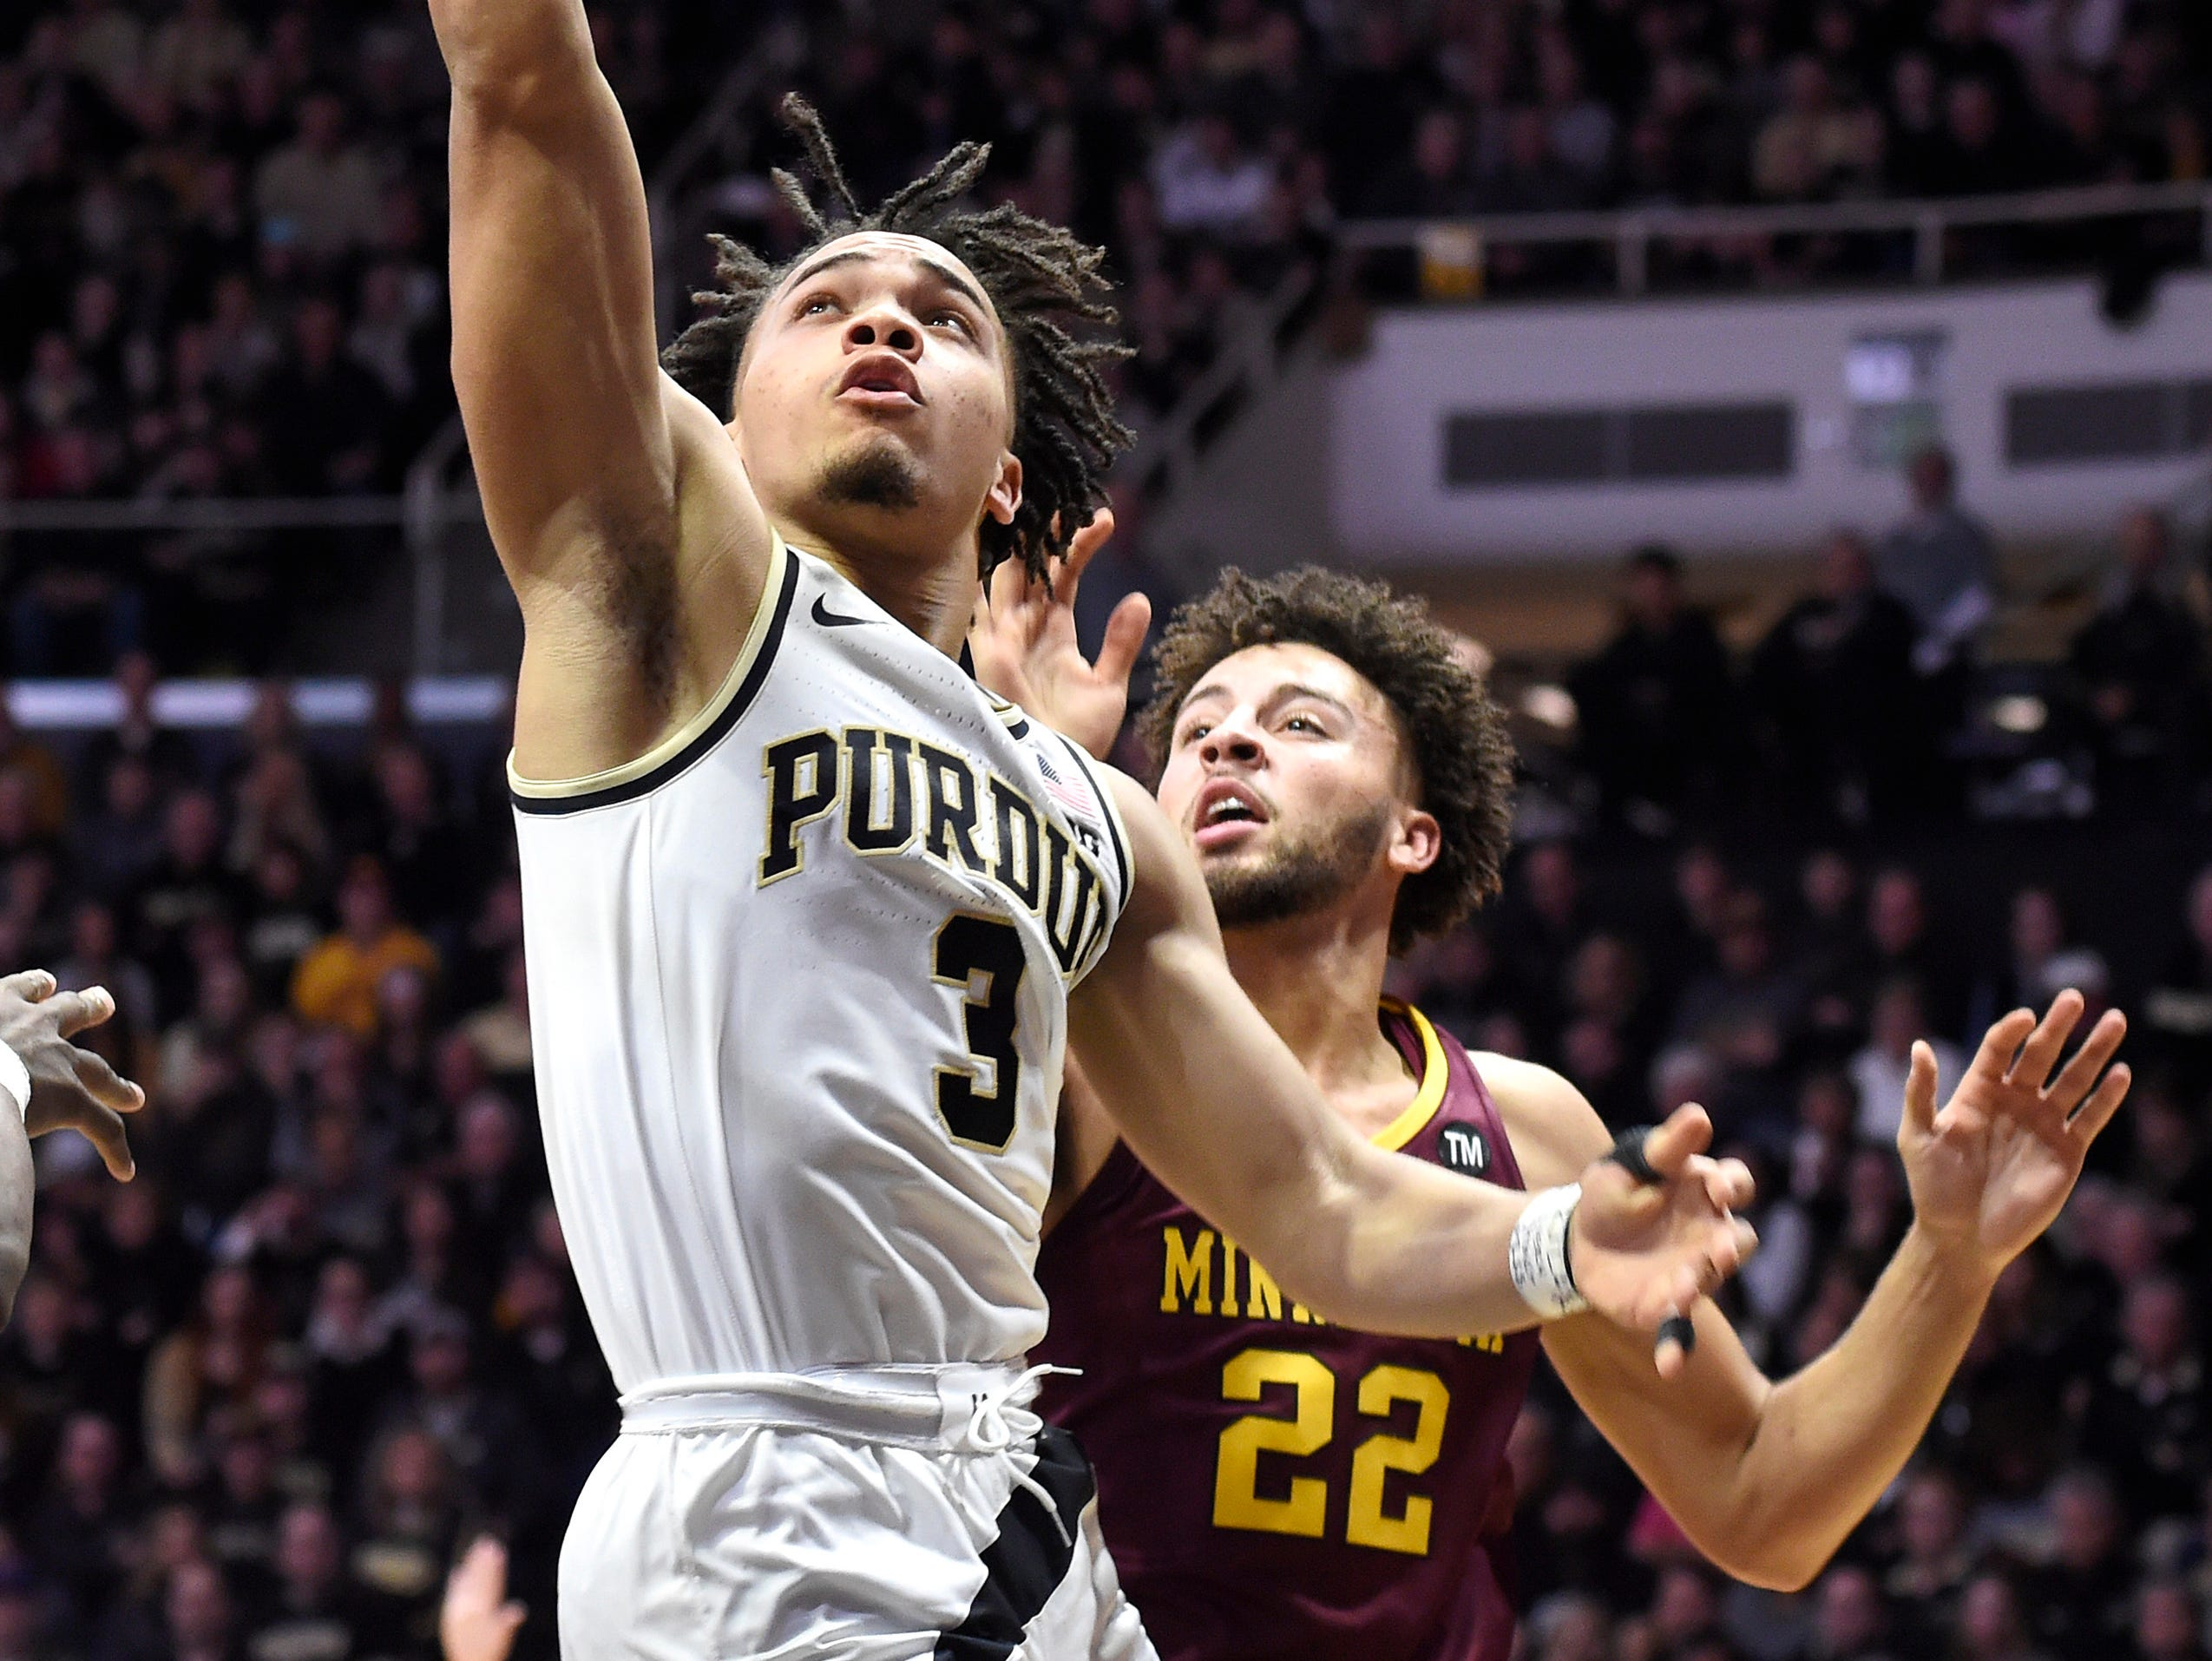 Feb 3, 2019; West Lafayette, IN, USA; Purdue Boilermakers guard Carsen Edwards (3) shoots the ball past Minnesota Golden Gophers guard Gabe Kalscheur (22) in the first half at Mackey Arena. Mandatory Credit: Sandra Dukes-USA TODAY Sports